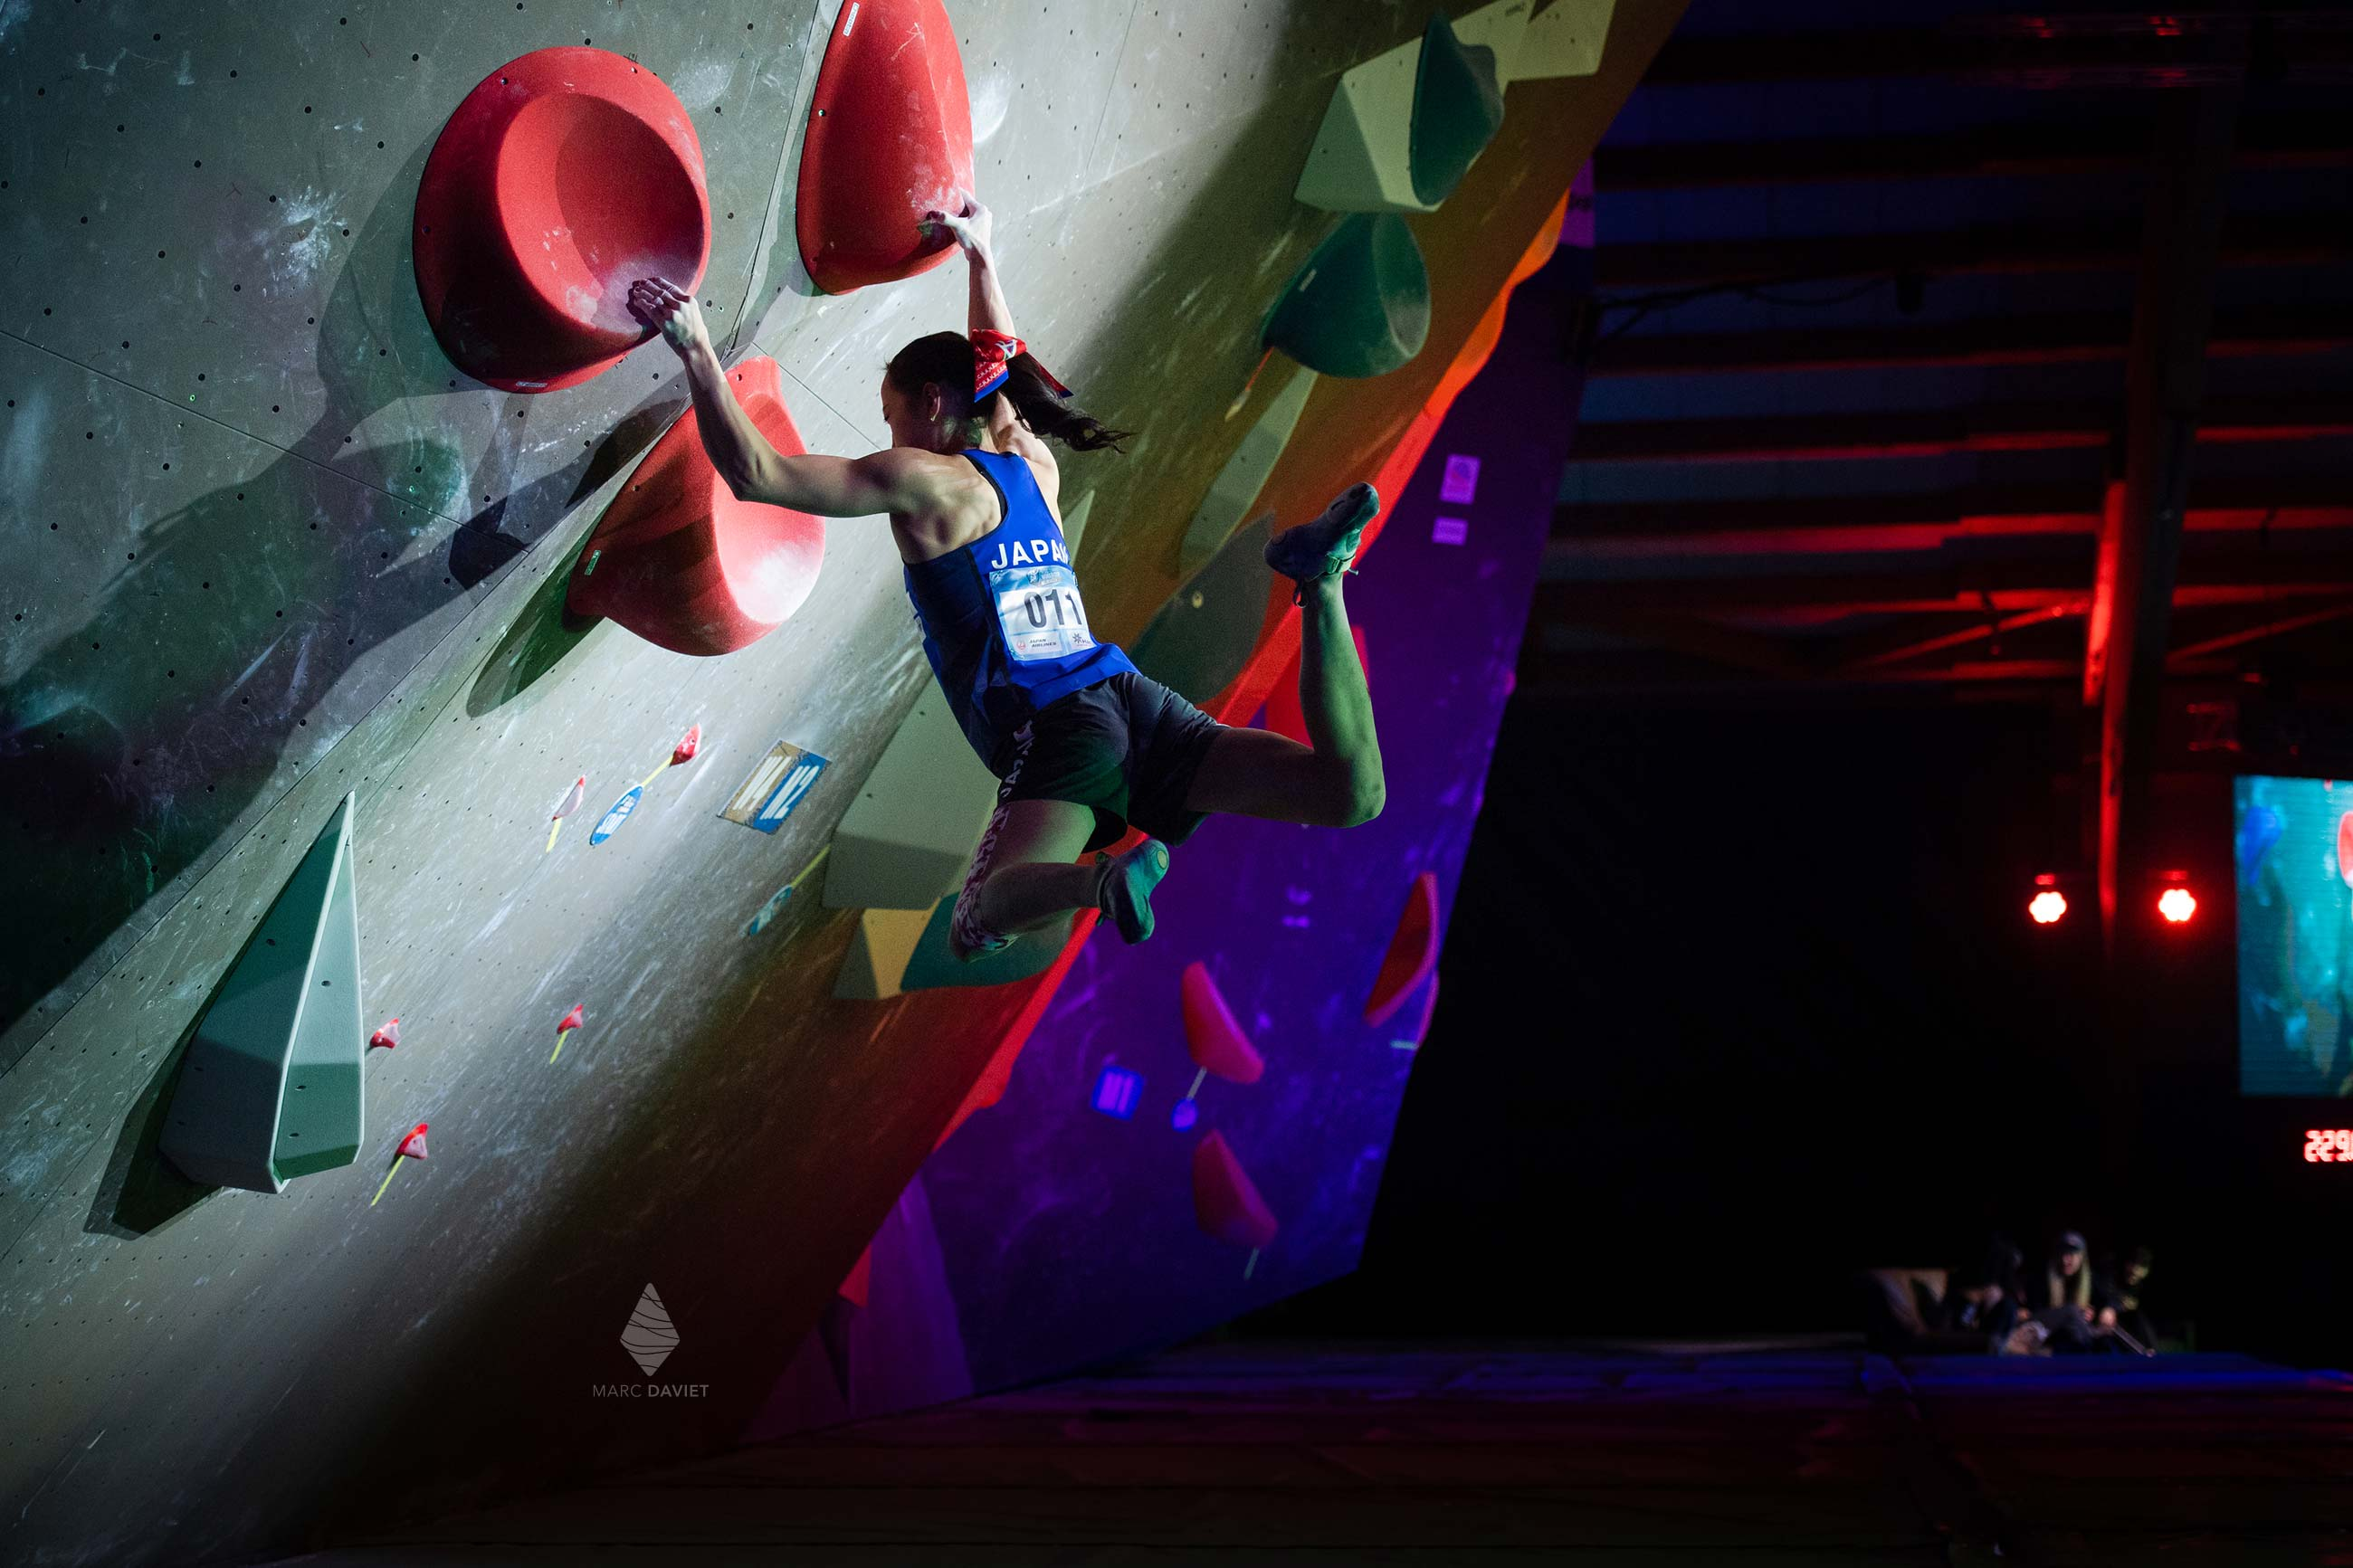 Bouldering WorldCup at Meiringen